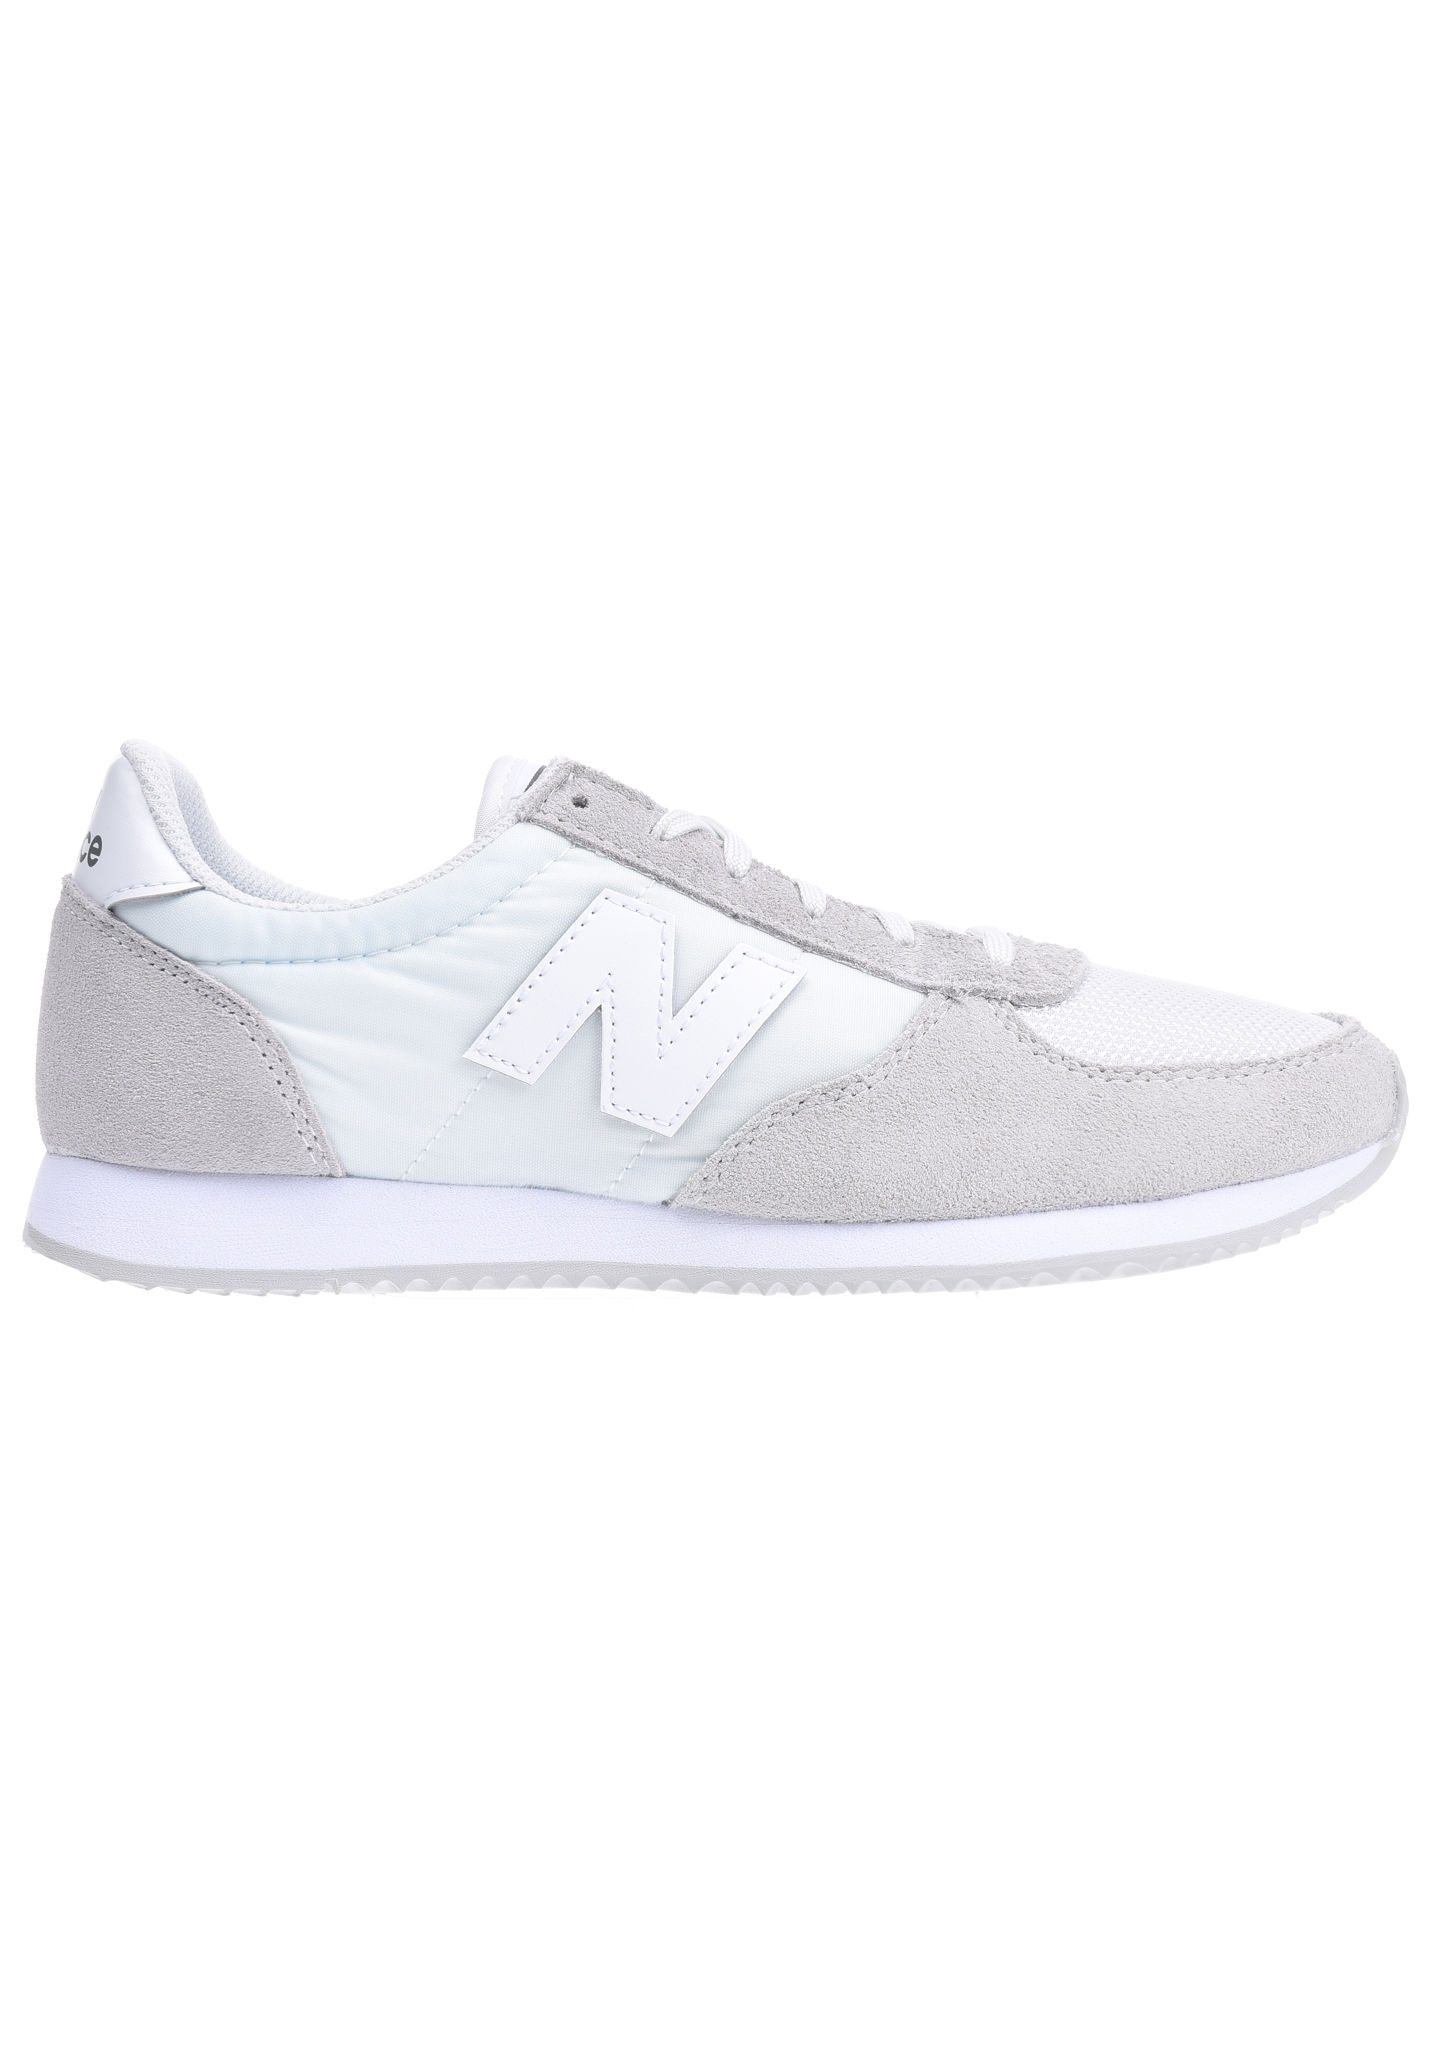 ef706510a78b52 NEW BALANCE WL220 B - Sneaker für Damen - Grau - Planet Sports